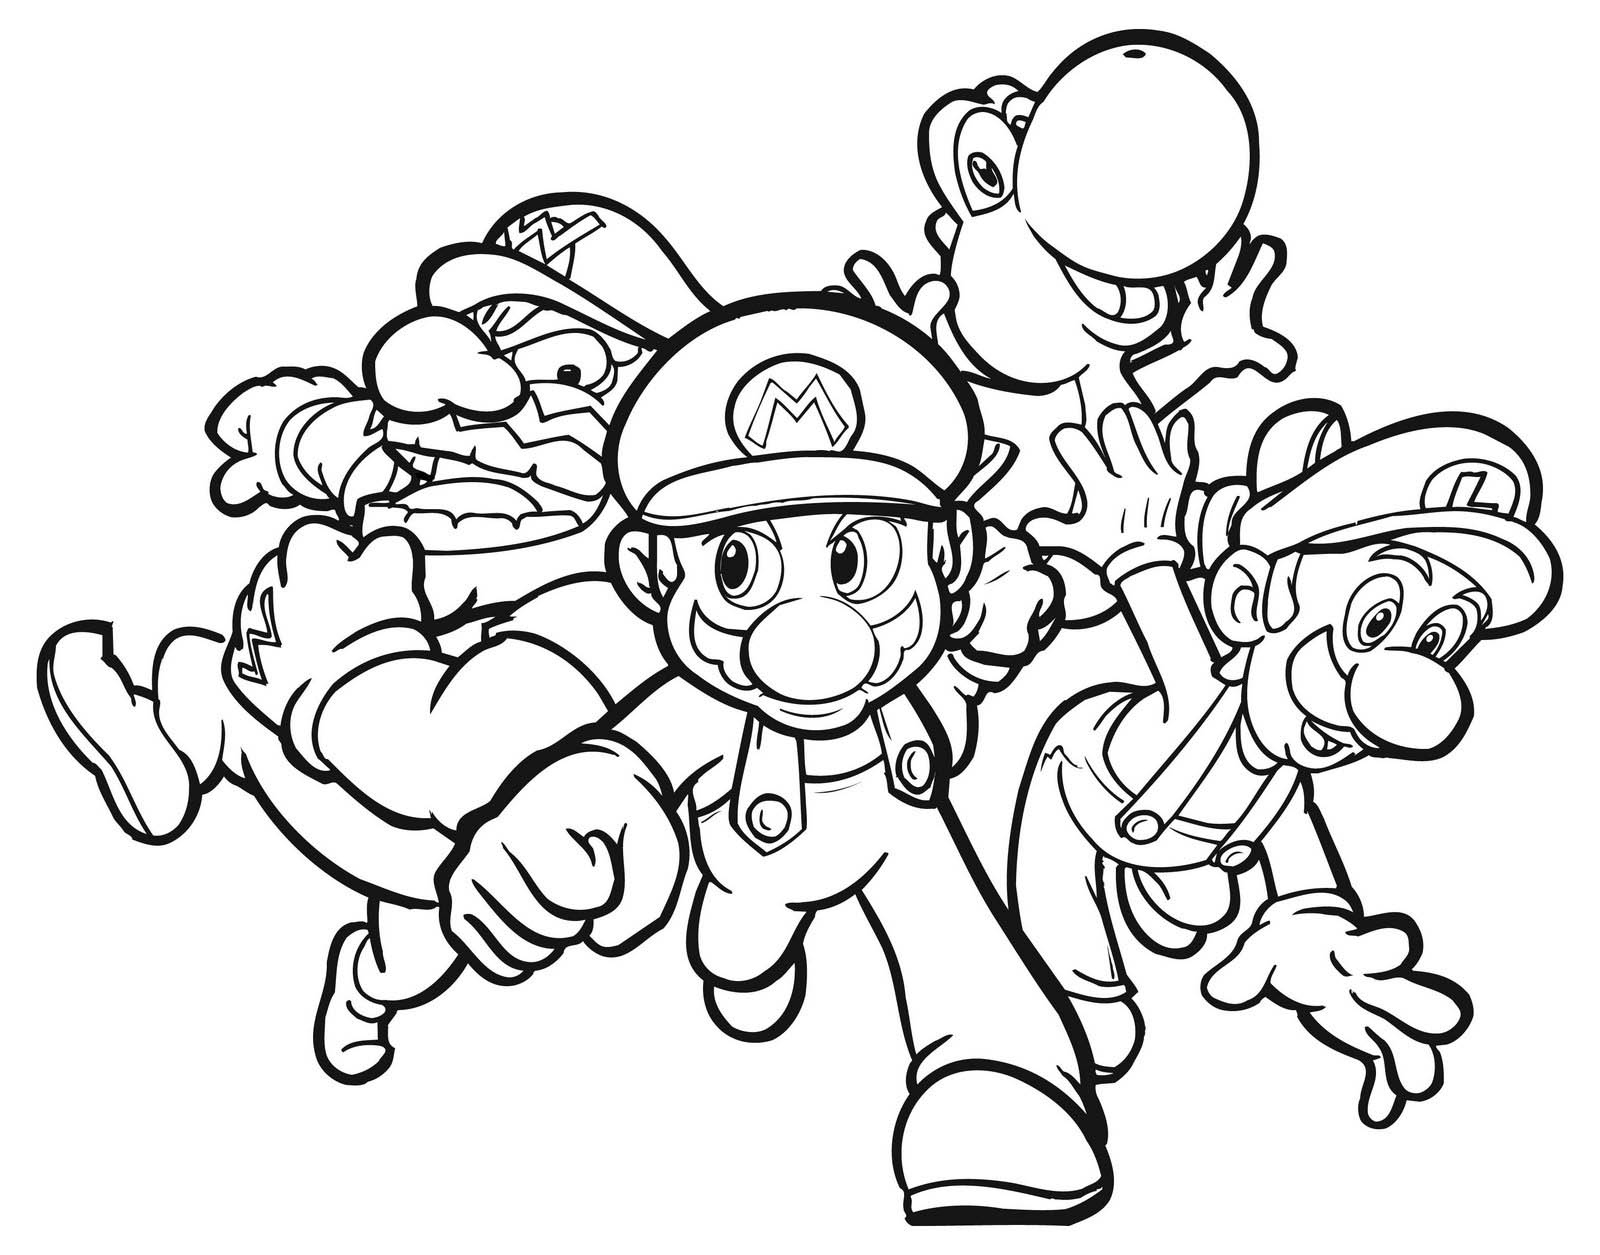 mario bros coloring pages - 9 free mario bros coloring pages for m=1